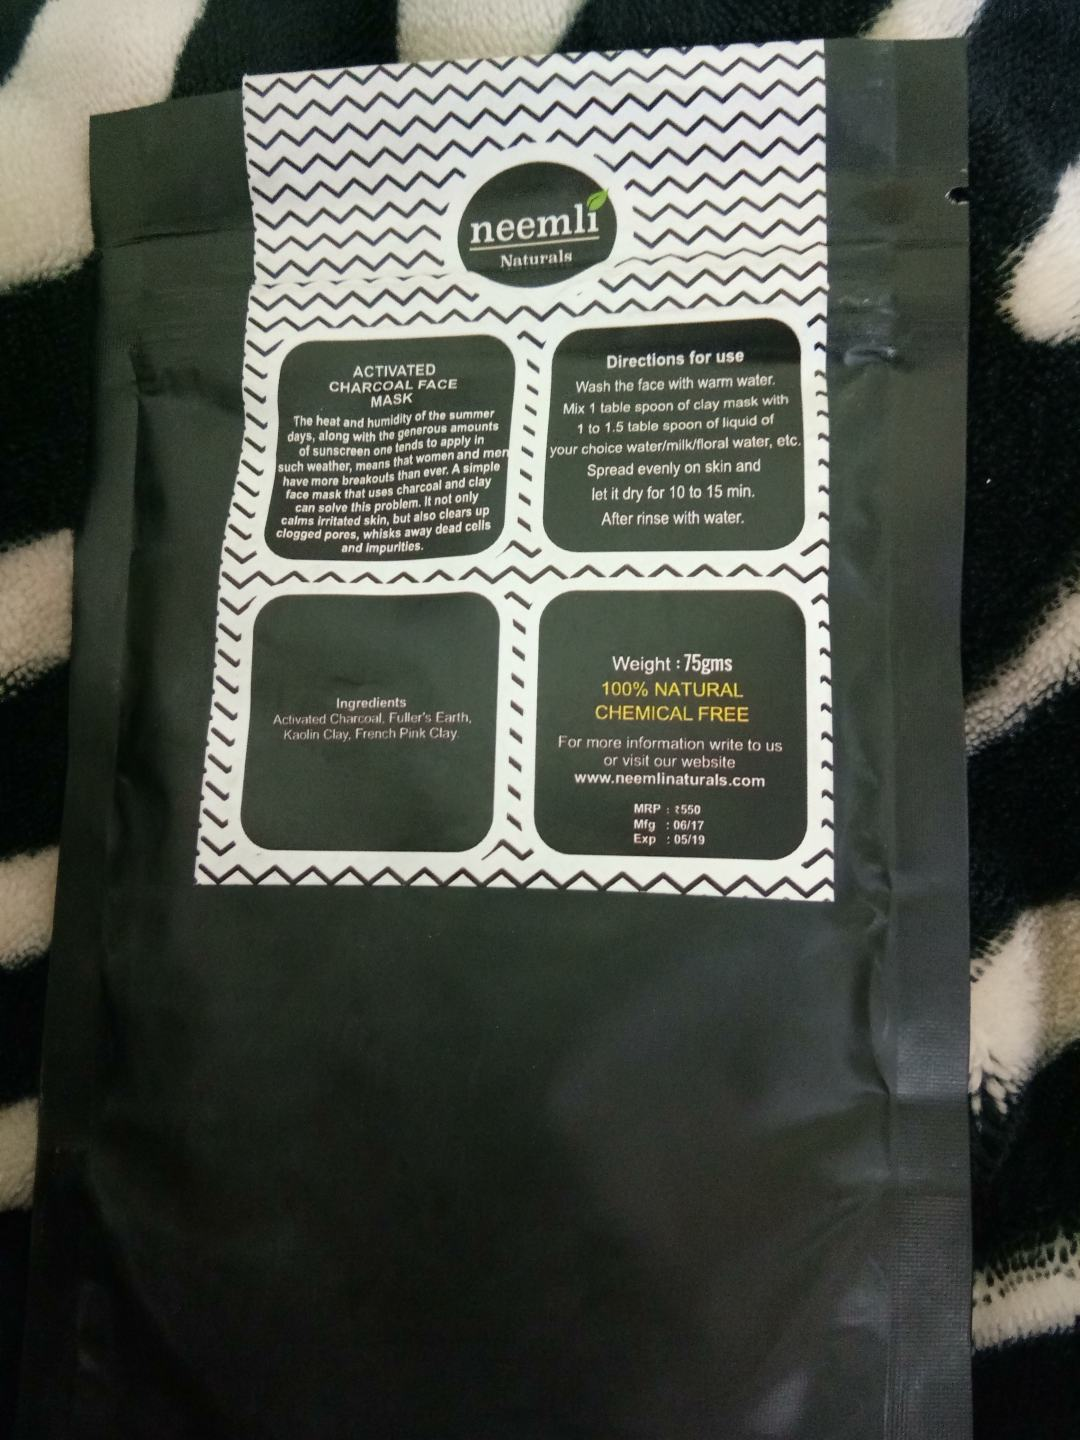 Neemli Naturals Activated Charcoal Face Mask